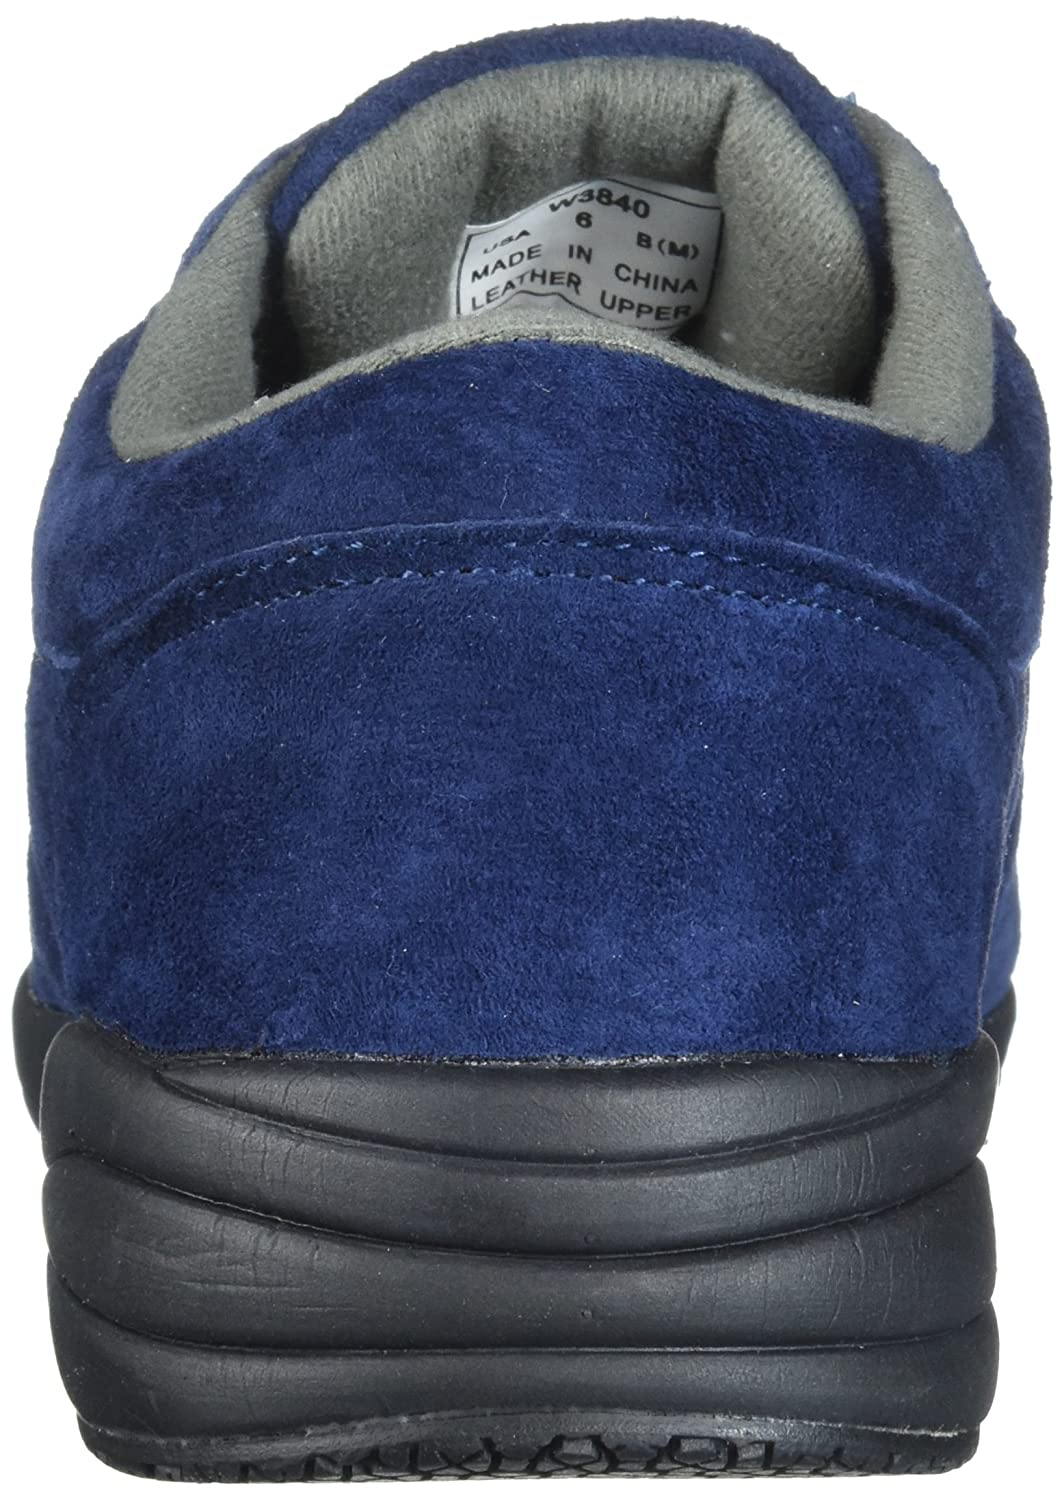 Propet Women's Washable Walker Sneaker B06XRWPB8Z 10 W US|Sr Indigo